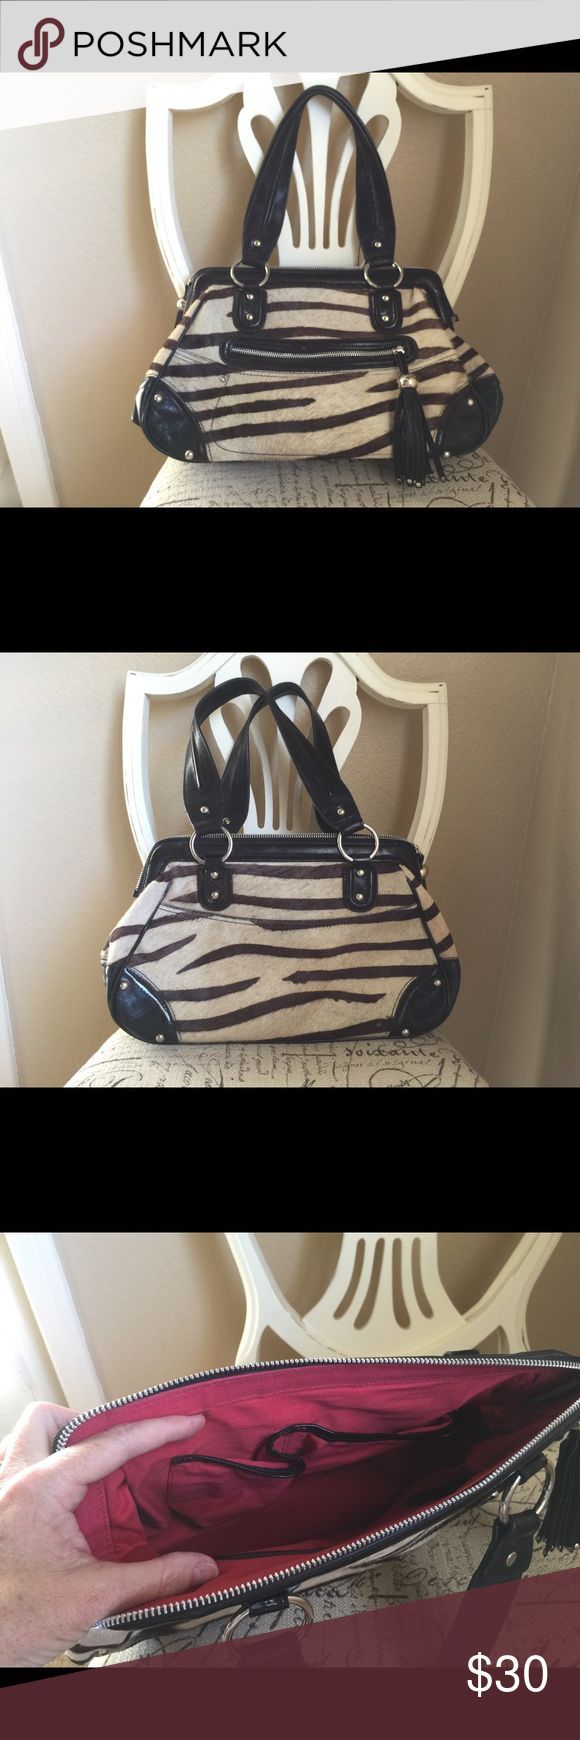 Marks & Spencer Autograph. Cow hide (with hair). Mark & Spencer Autograph. Cow hide (with hair) with zebra print. Black leather trim. Red lining. Zipper top closure with black leather tassel. Mark & Spencer Autograph Bags